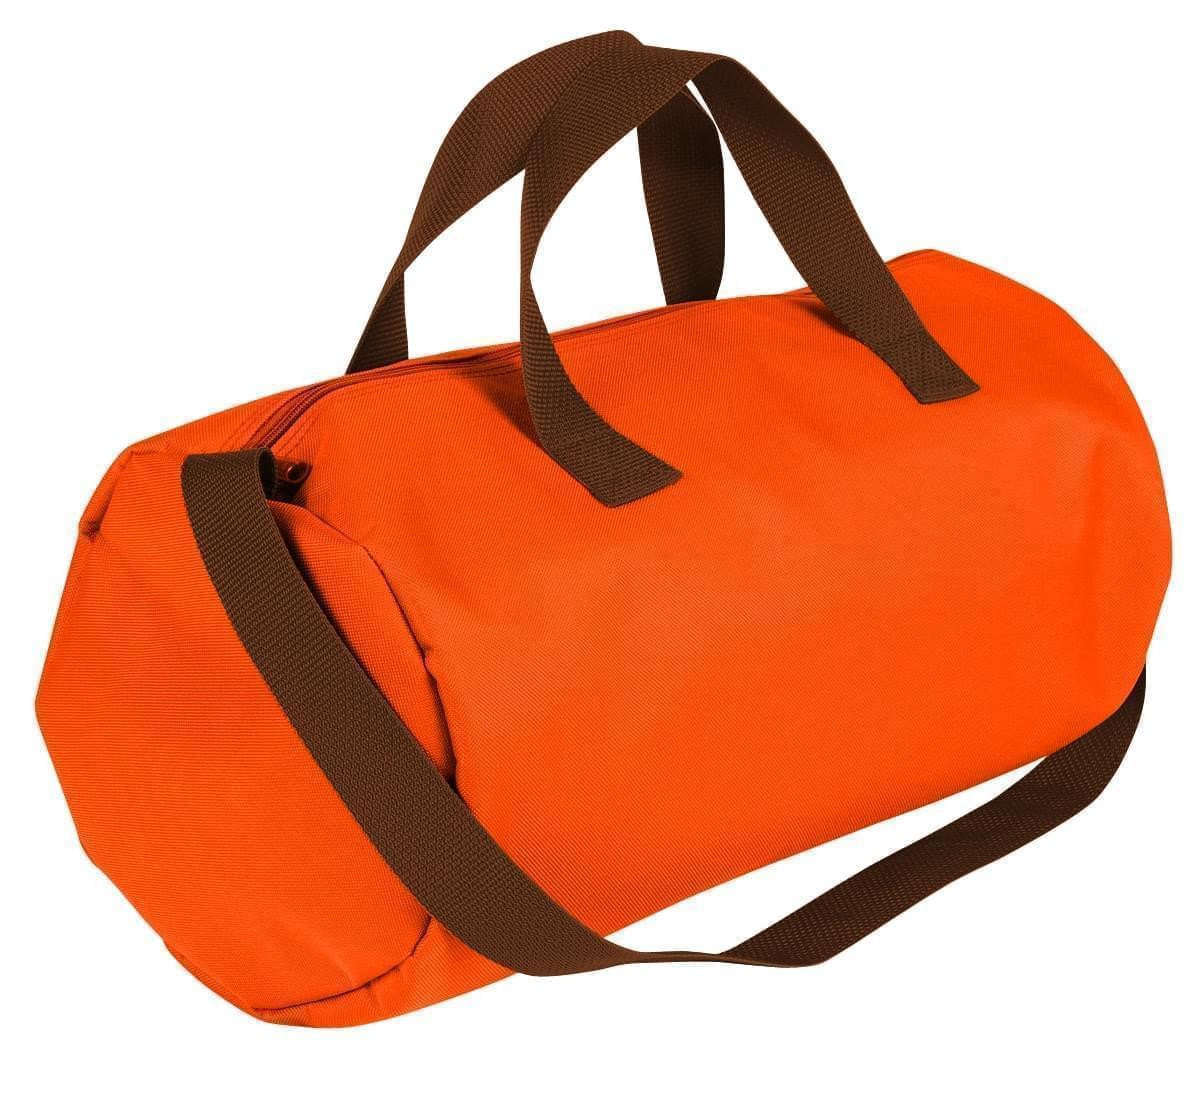 USA Made Nylon Poly Gym Roll Bags, Orange-Brown, ROCX31AAXS